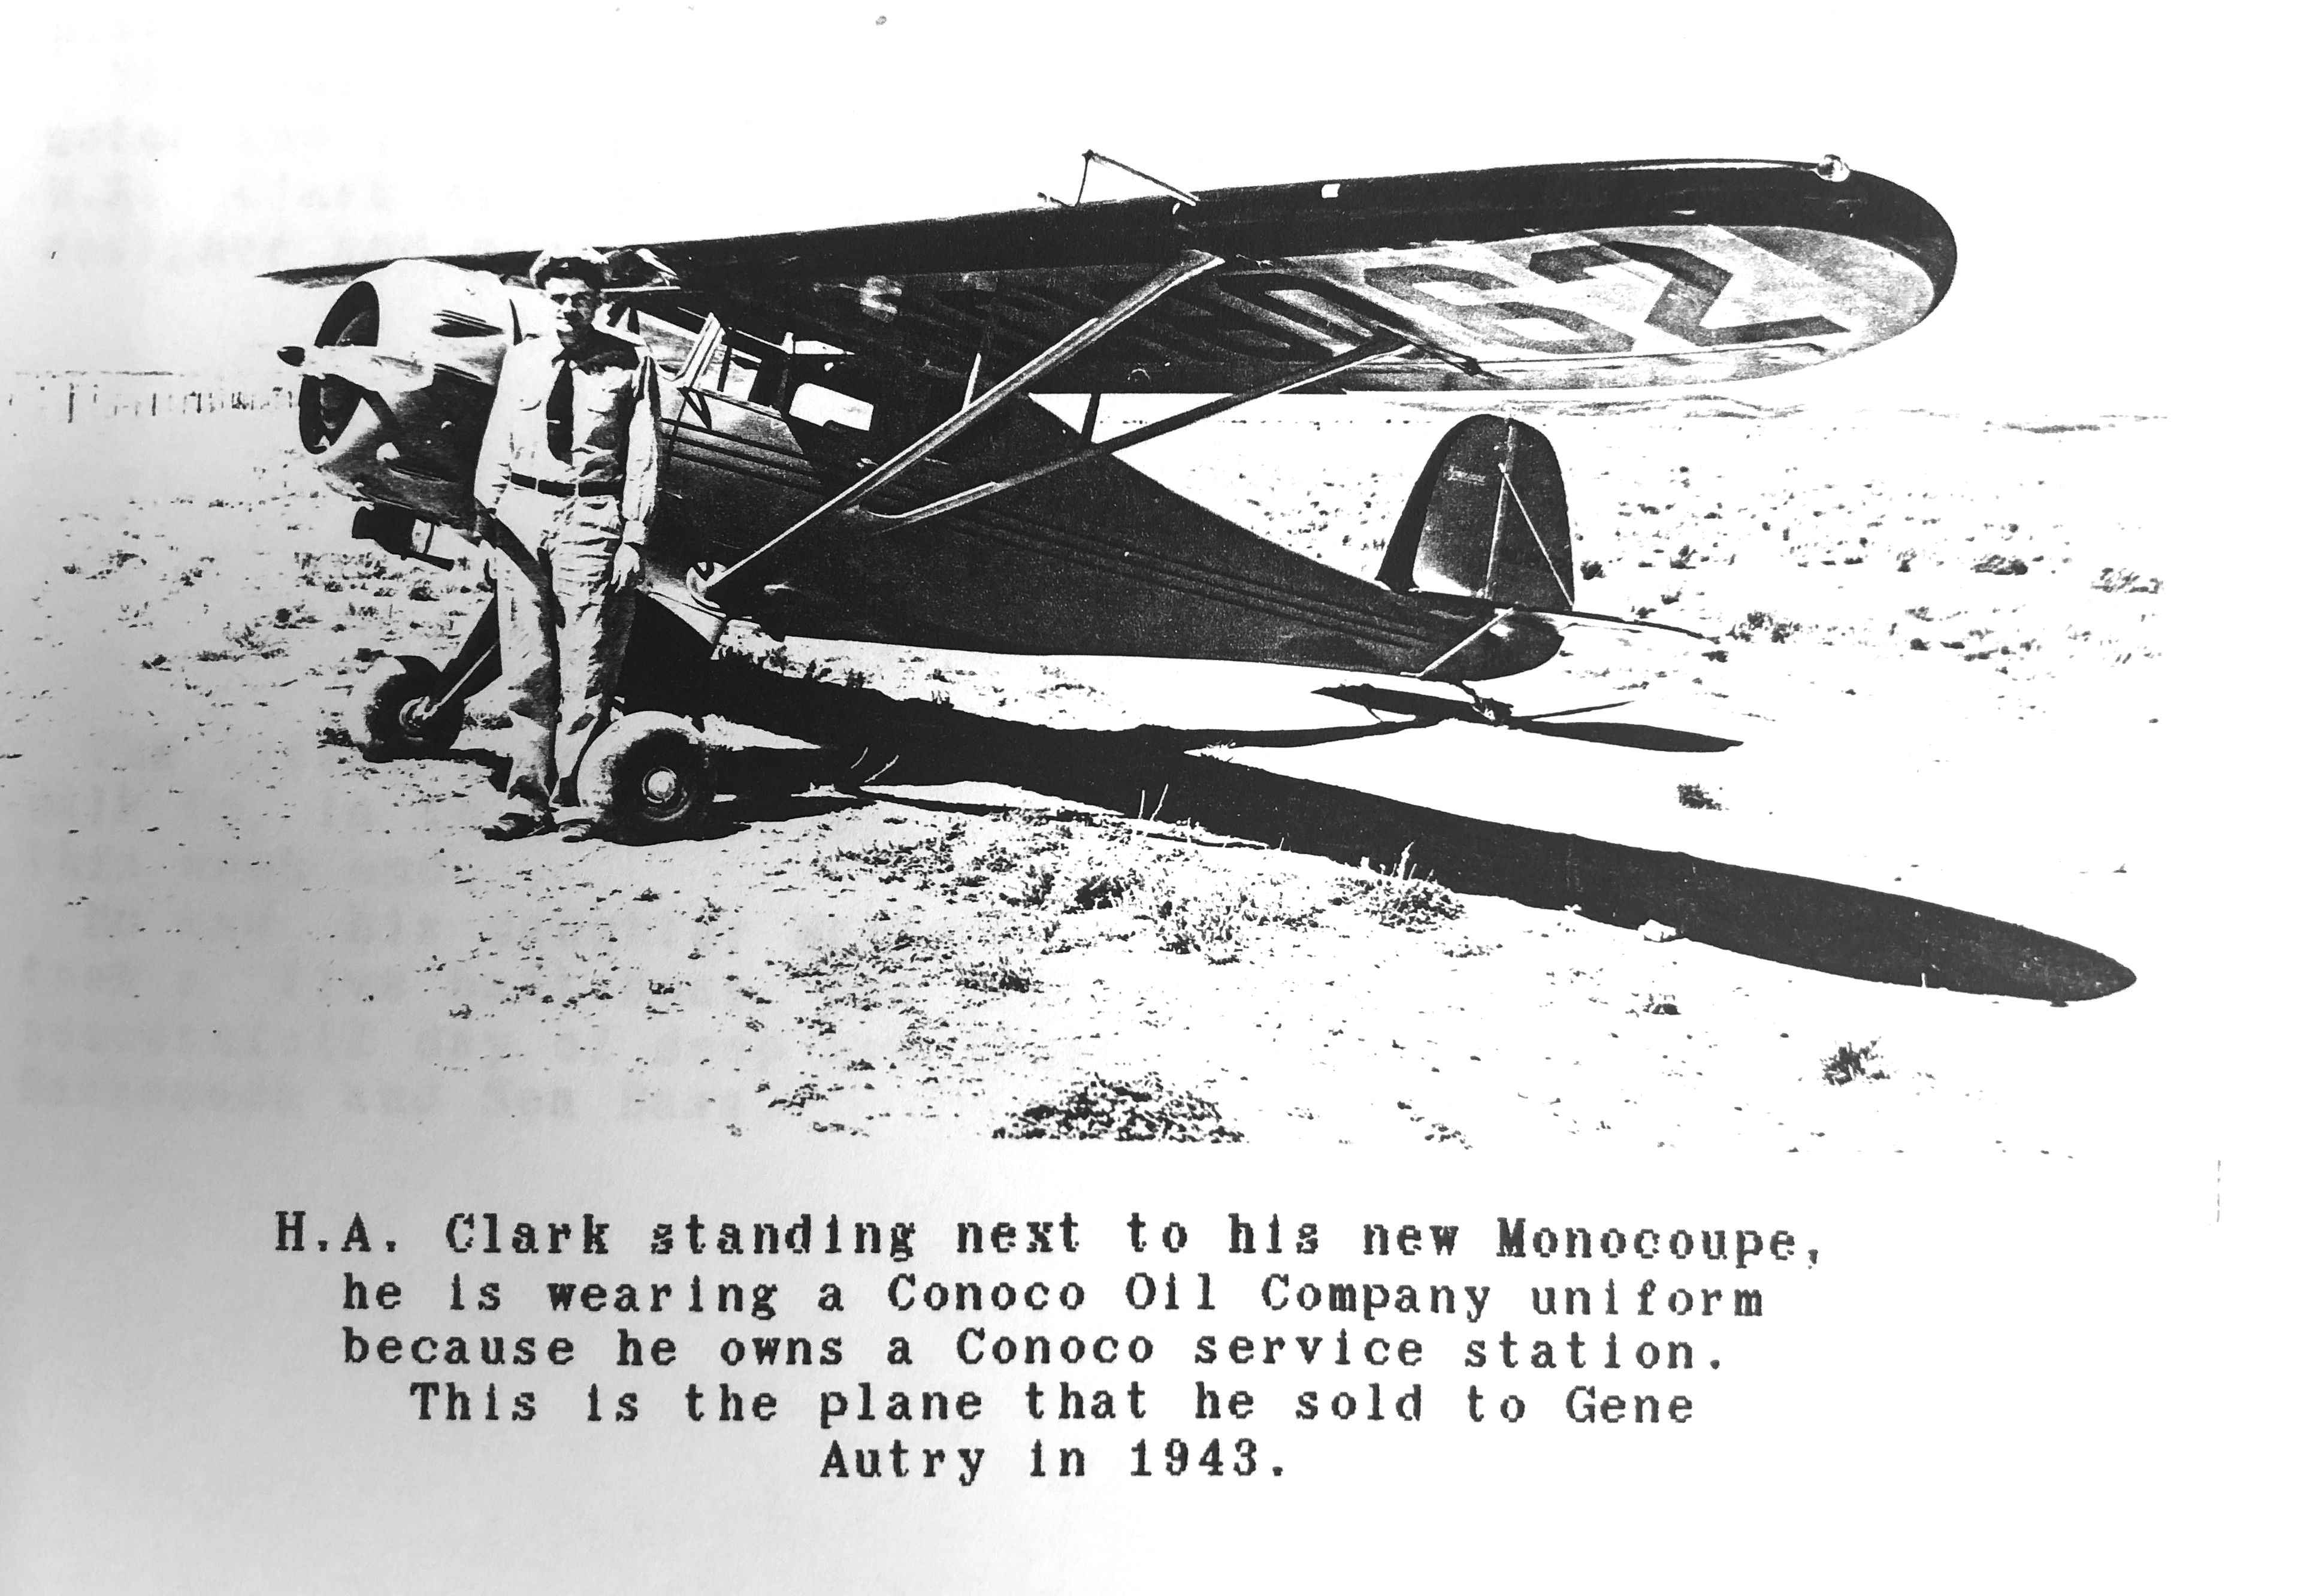 Williams aviation history part V: The significance of H.A. Clark to ...